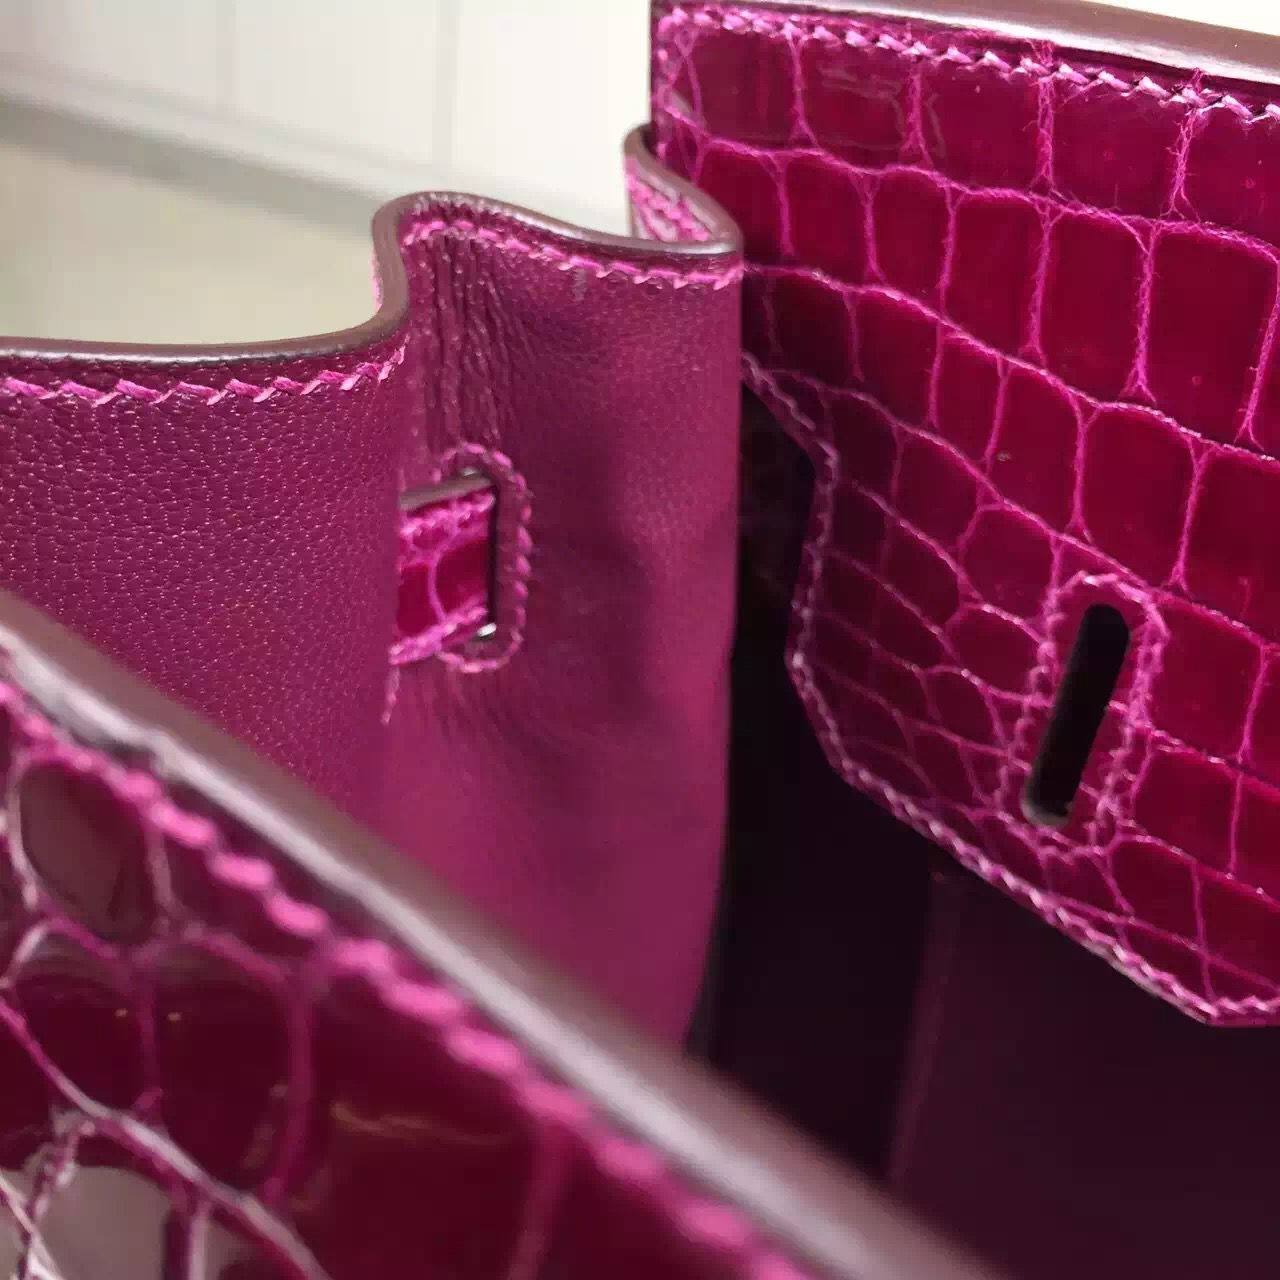 Hermes Crocodile Shiny Leather Birkin30 New Fuchsia Color Gold Hardware